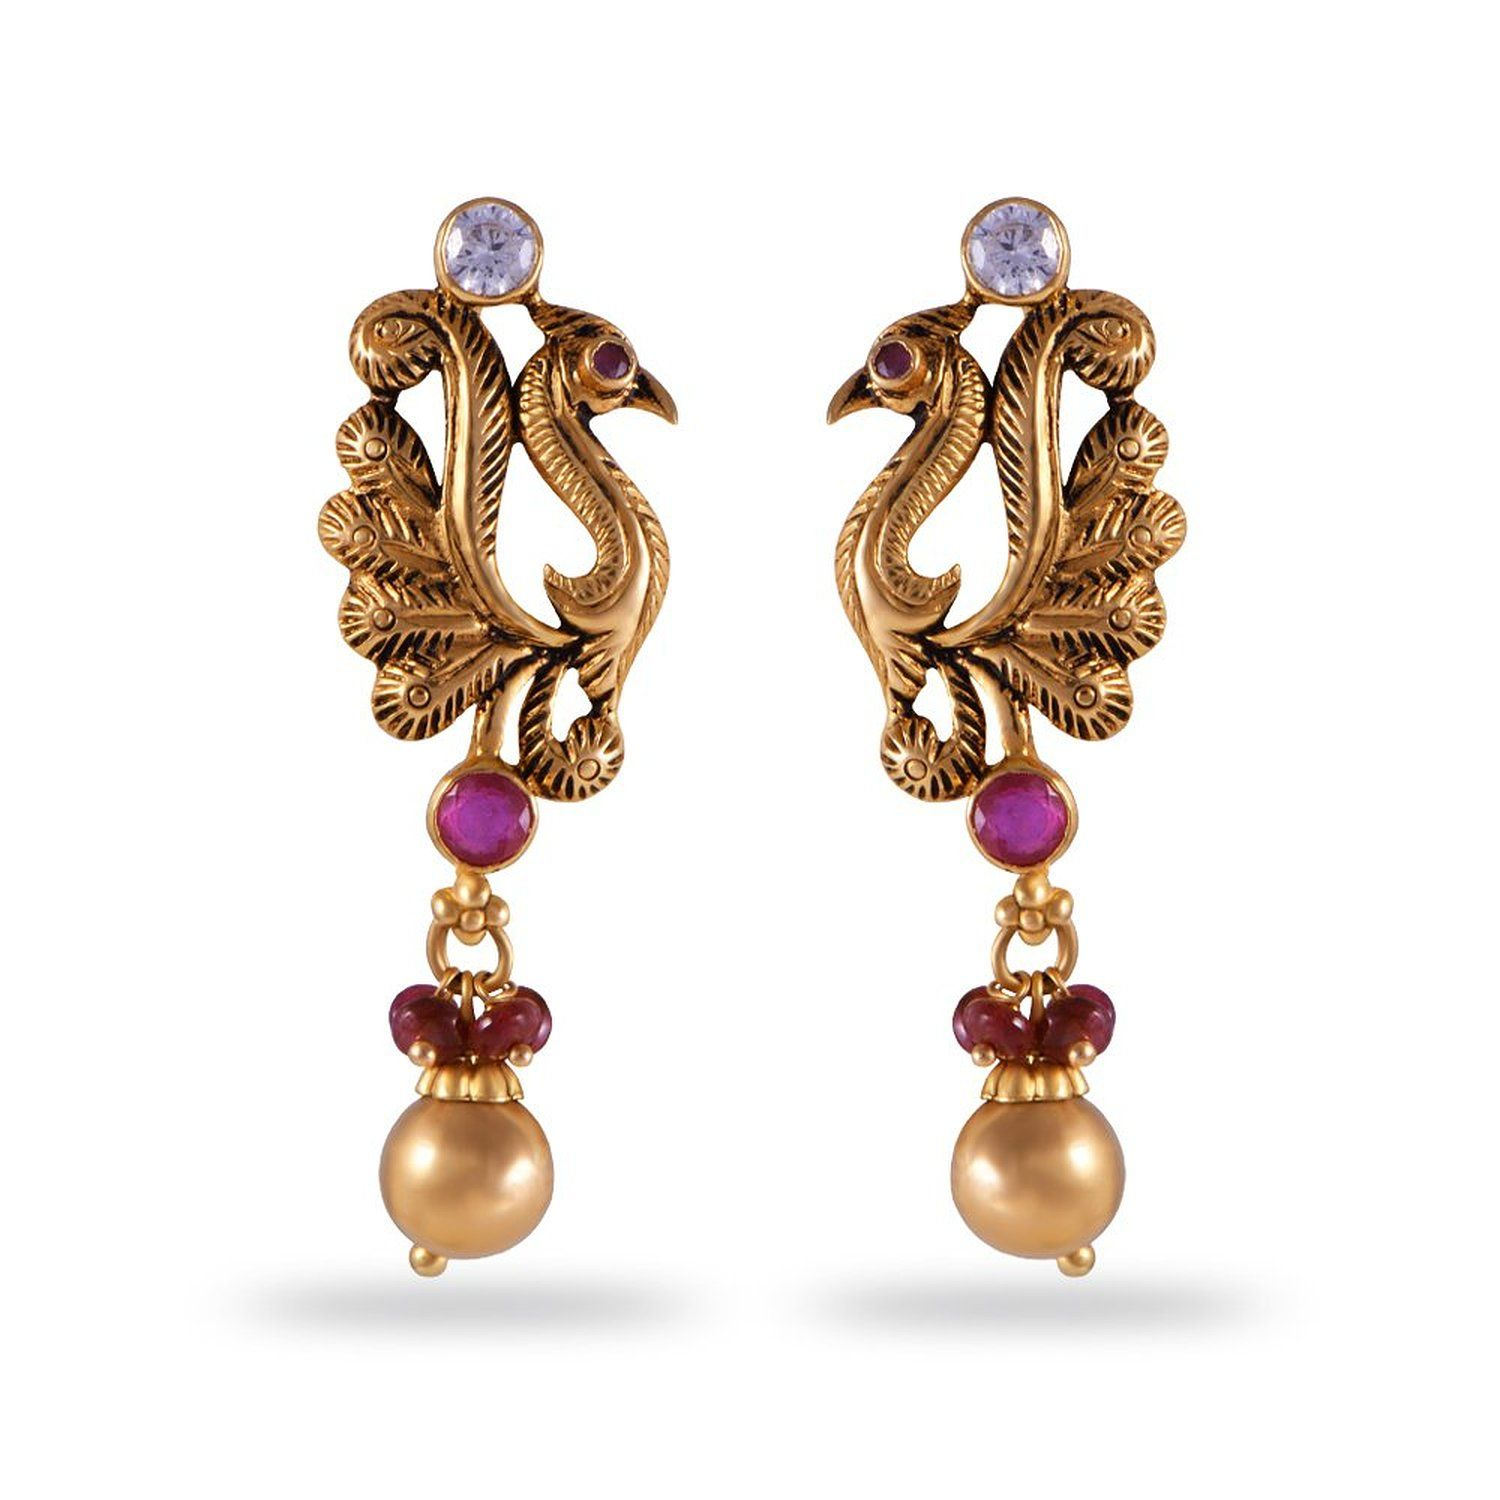 3e31db33b Buy Joyalukkas Apoorva Collection 22k Oxidized Gold Drop Earrings Online at  Low Prices in India | Amazon Jewellery Store - Amazon.in